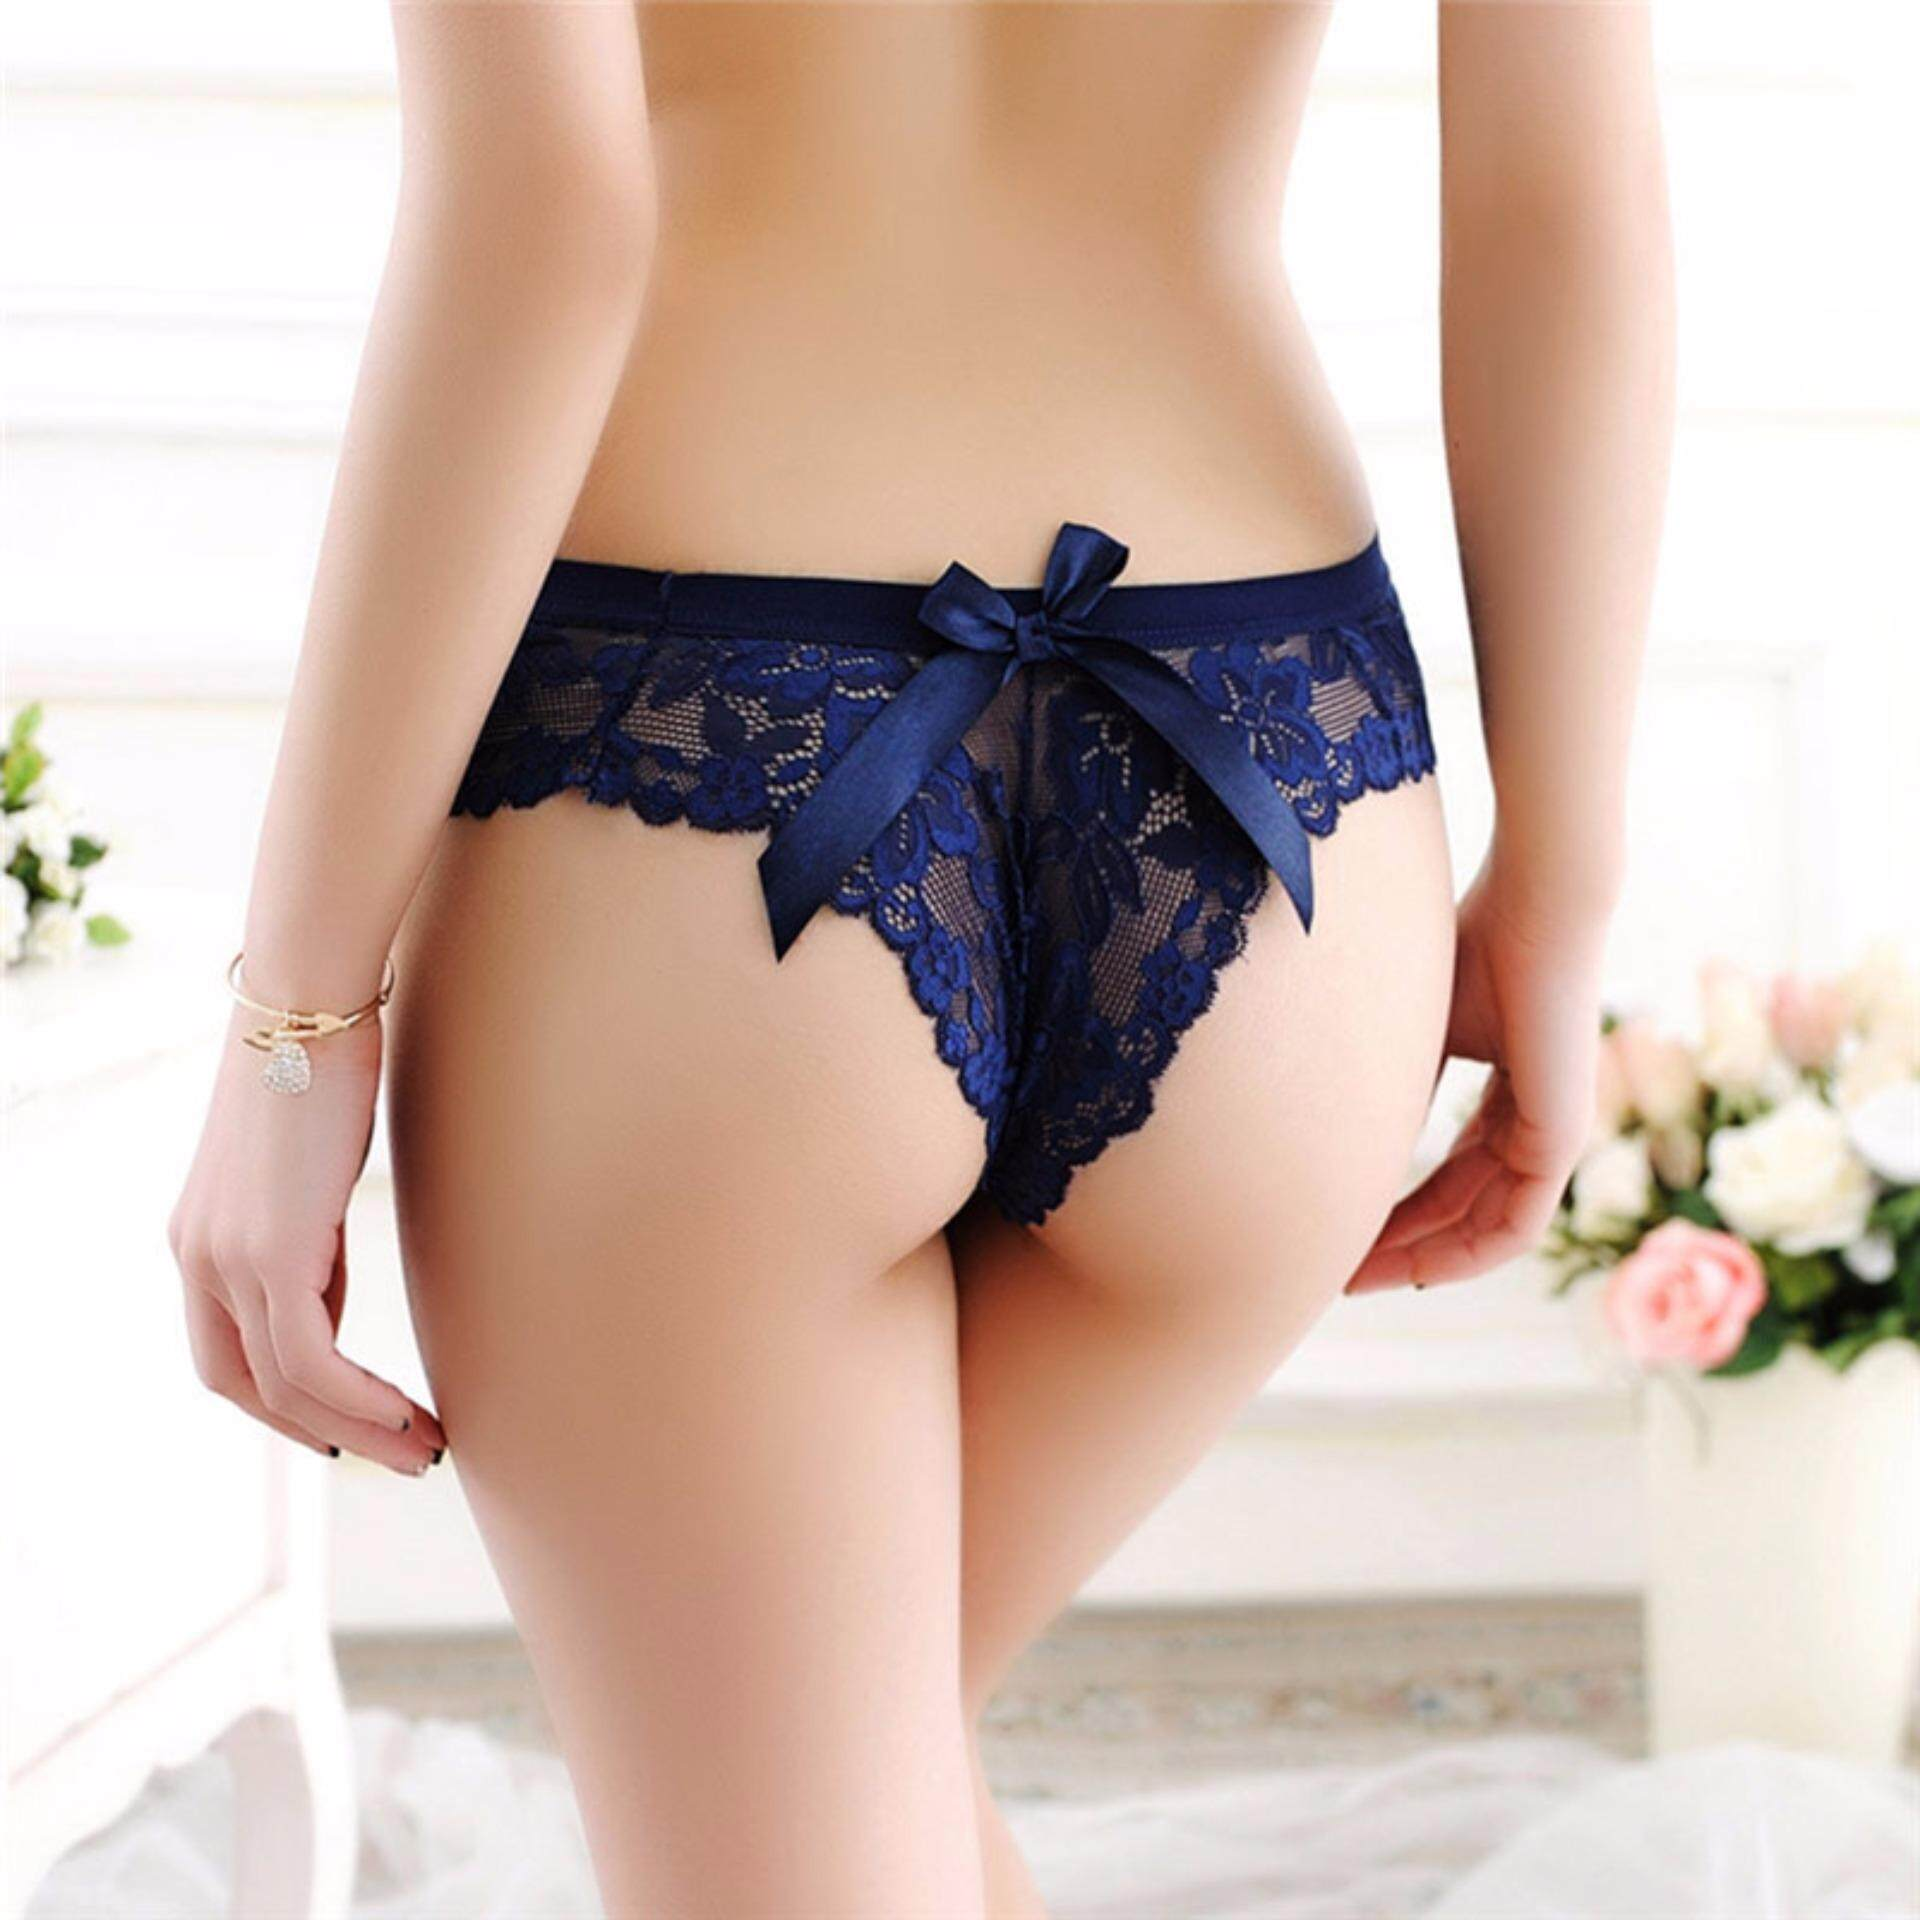 490cbf41e34fd Women Sexy Lace Panties G-string Underwear Lingerie Seamless Briefs  Intimates